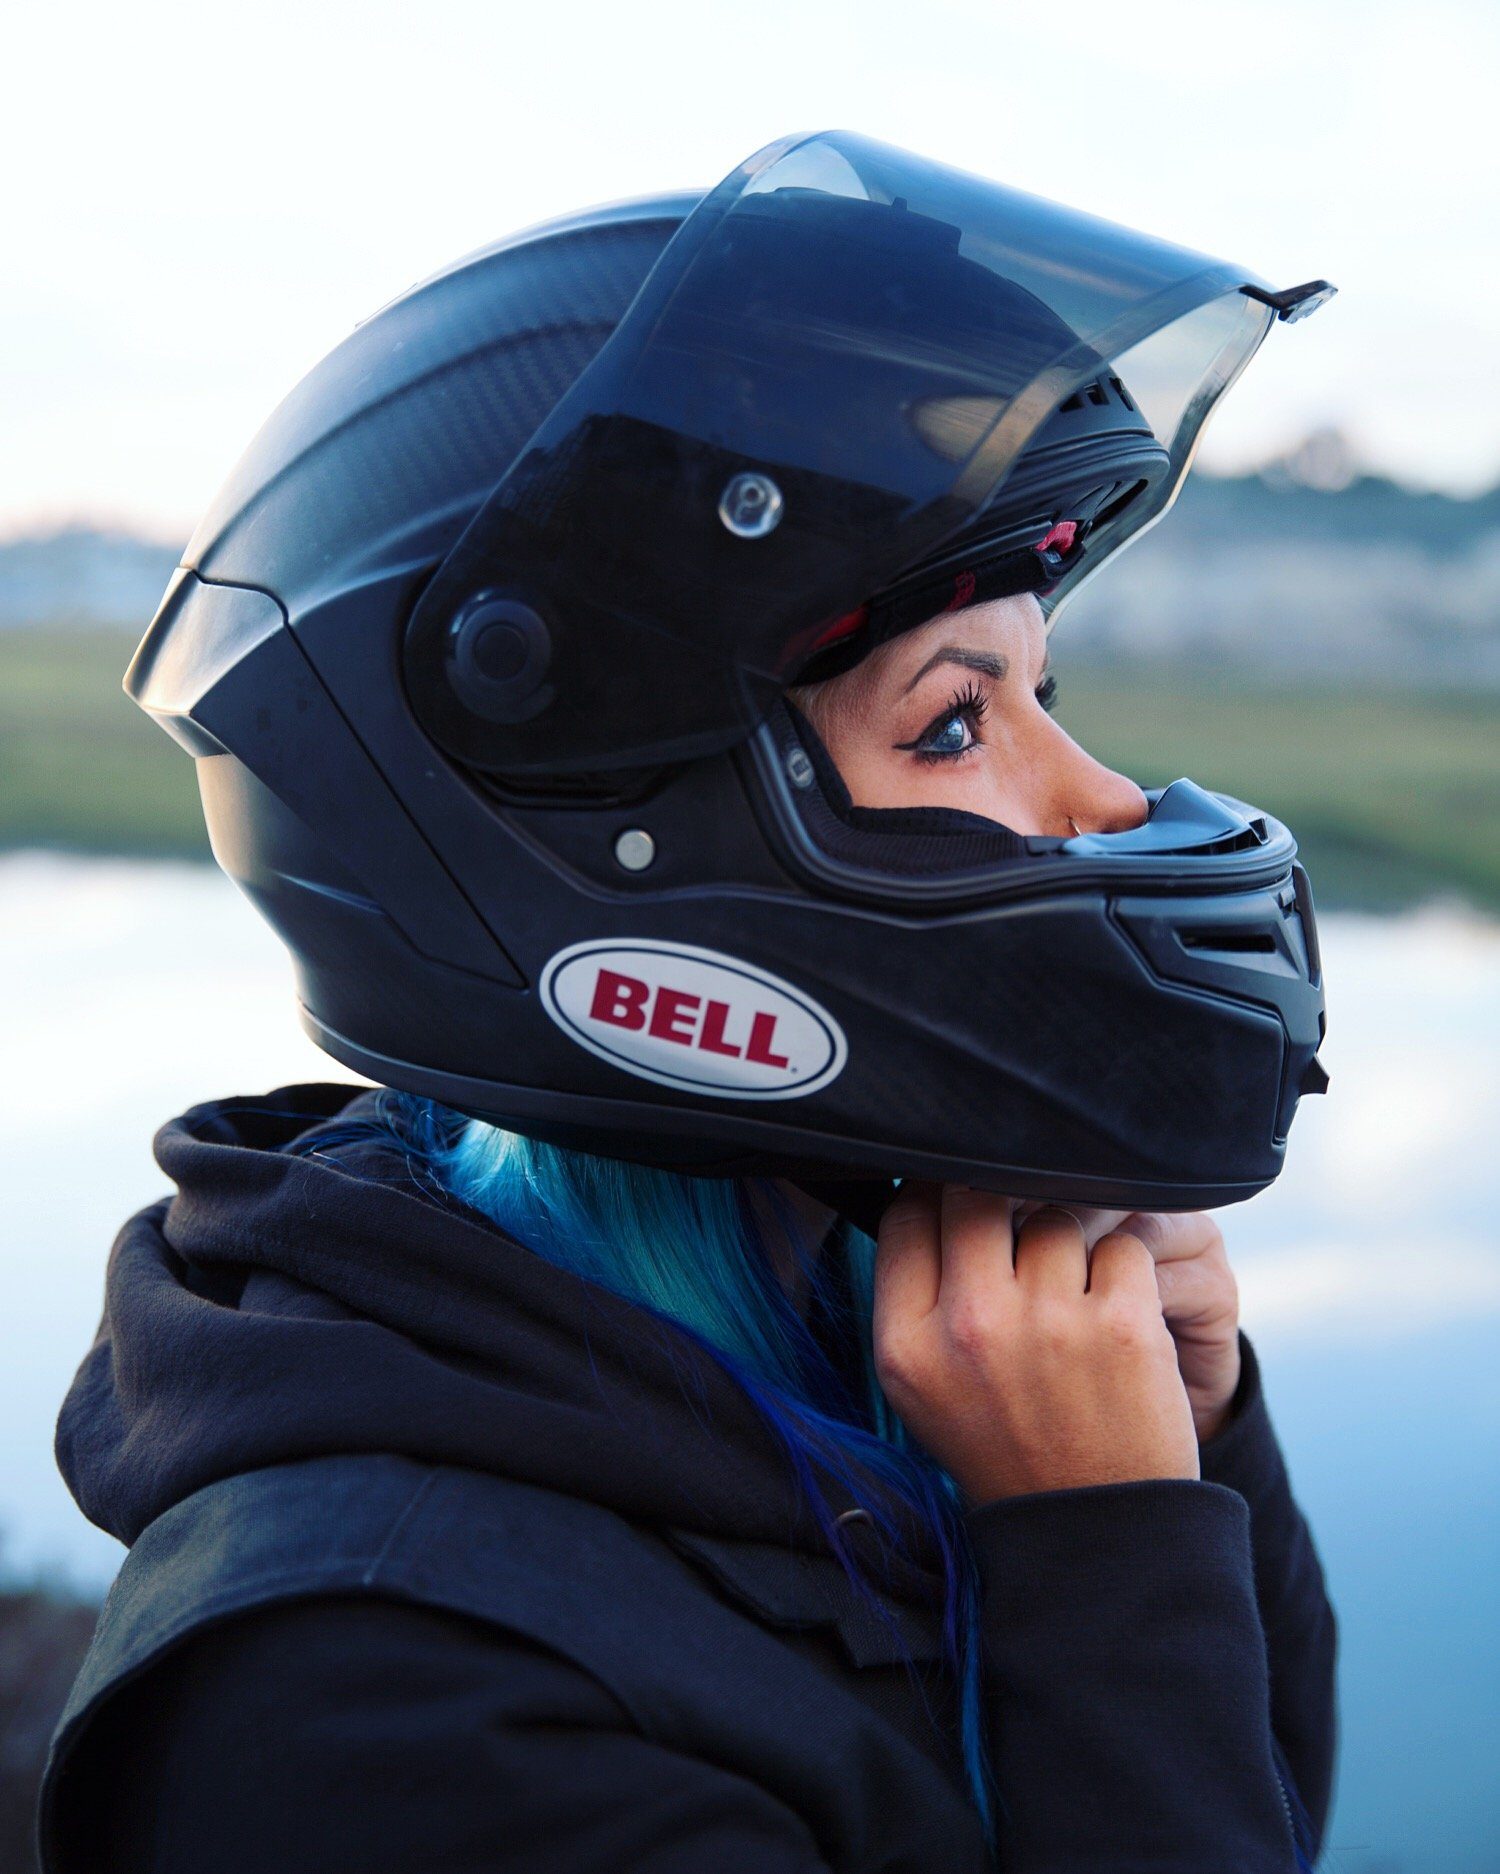 ALL-NEW BELL RACE STAR HELMET REVIEW